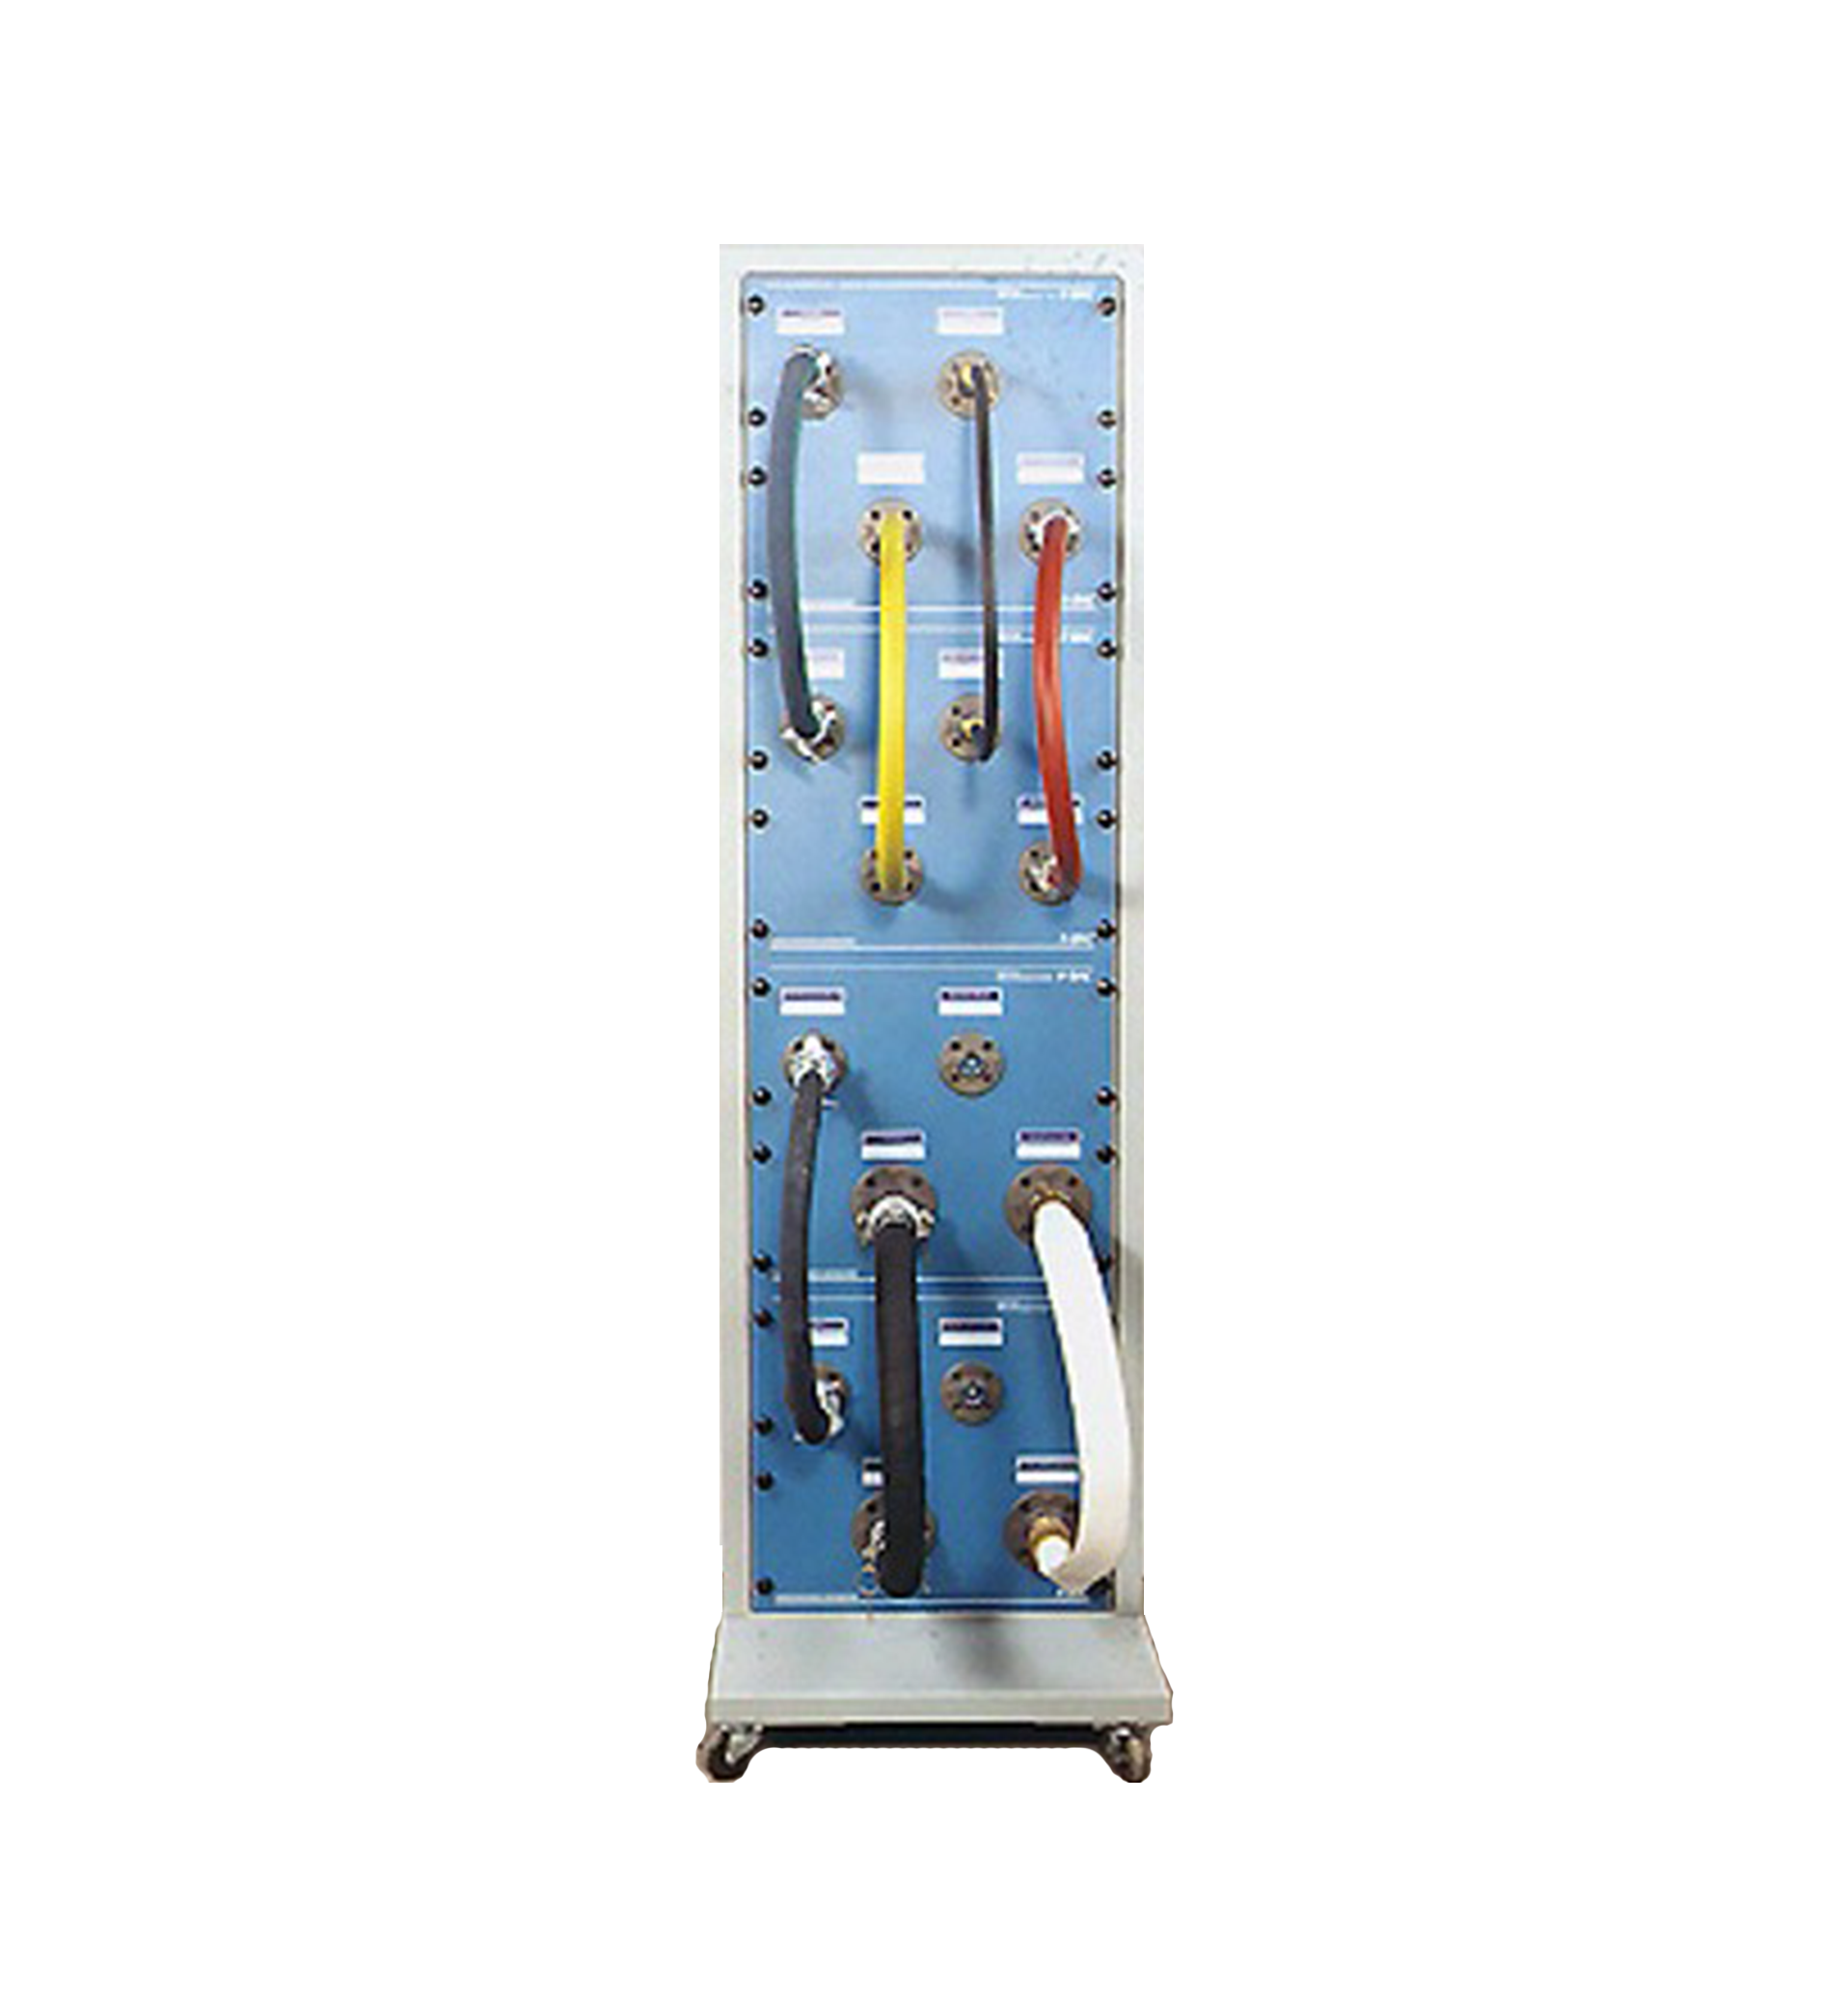 PAC Hose & Coupling Sample Board Image